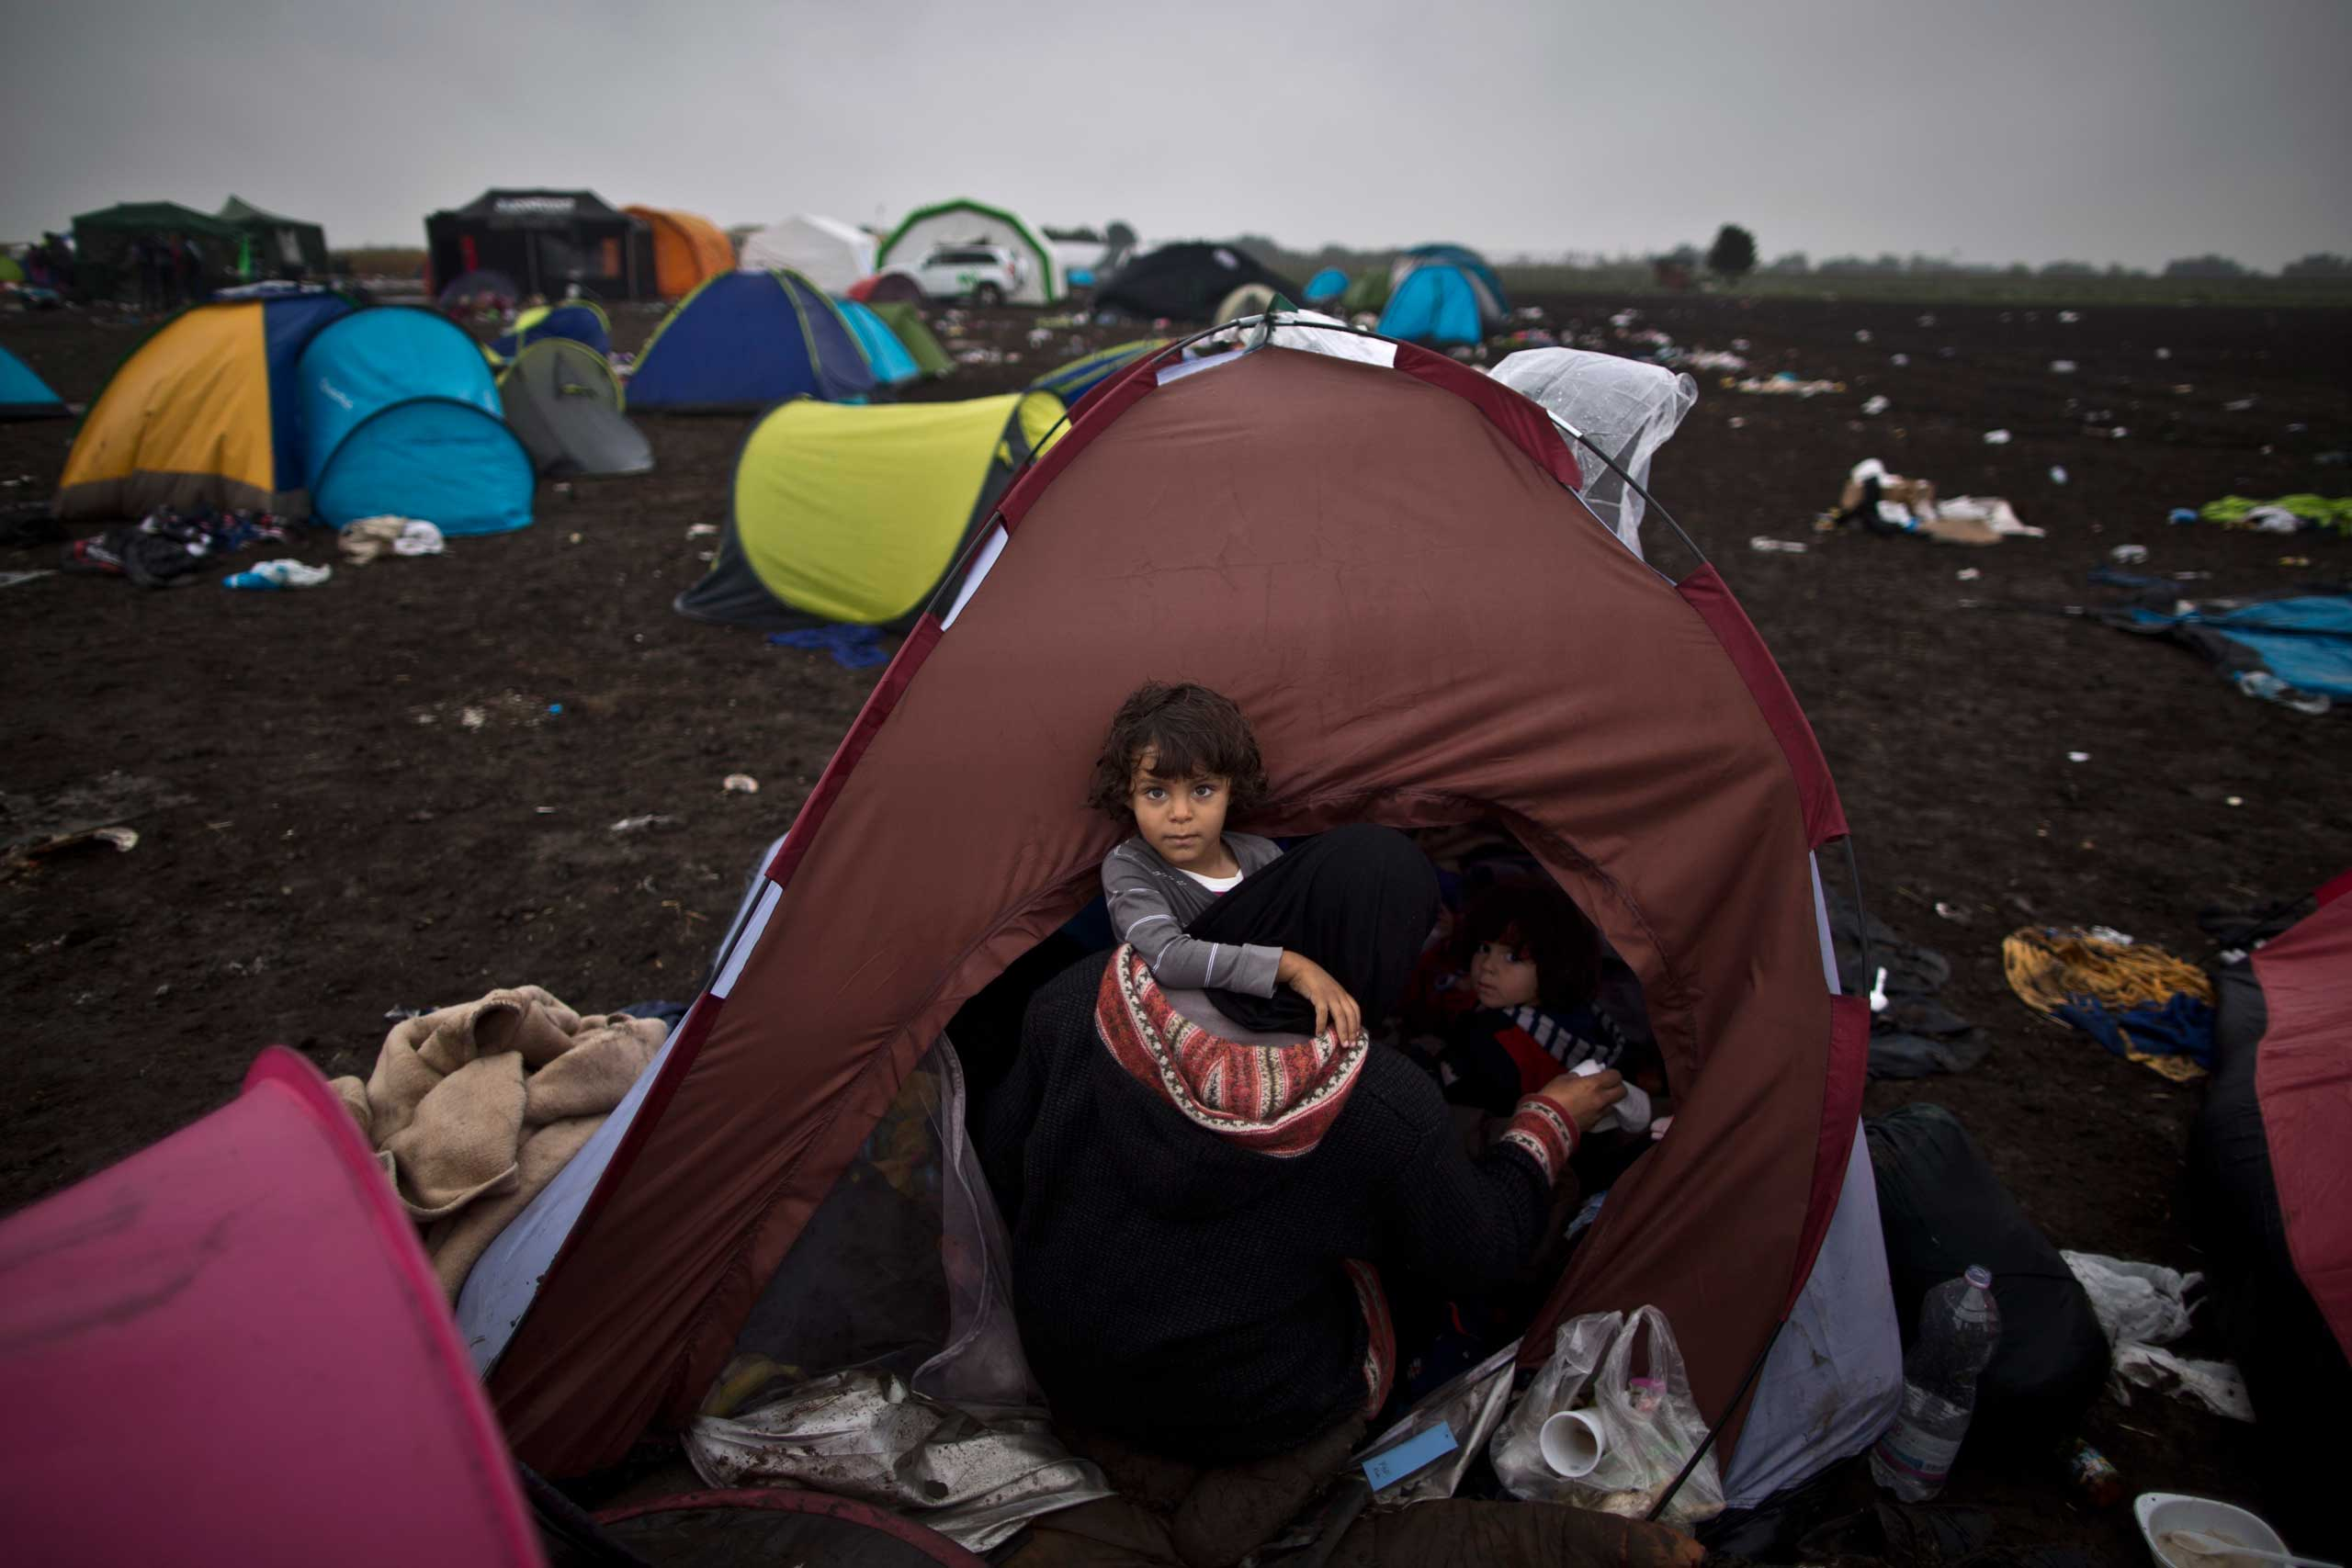 Syrian refugee child Zaid Hussein, 4, is held by his mother while sitting inside their tent at a makeshift camp for asylum seekers in Roszke, on Sept. 11, 2015.